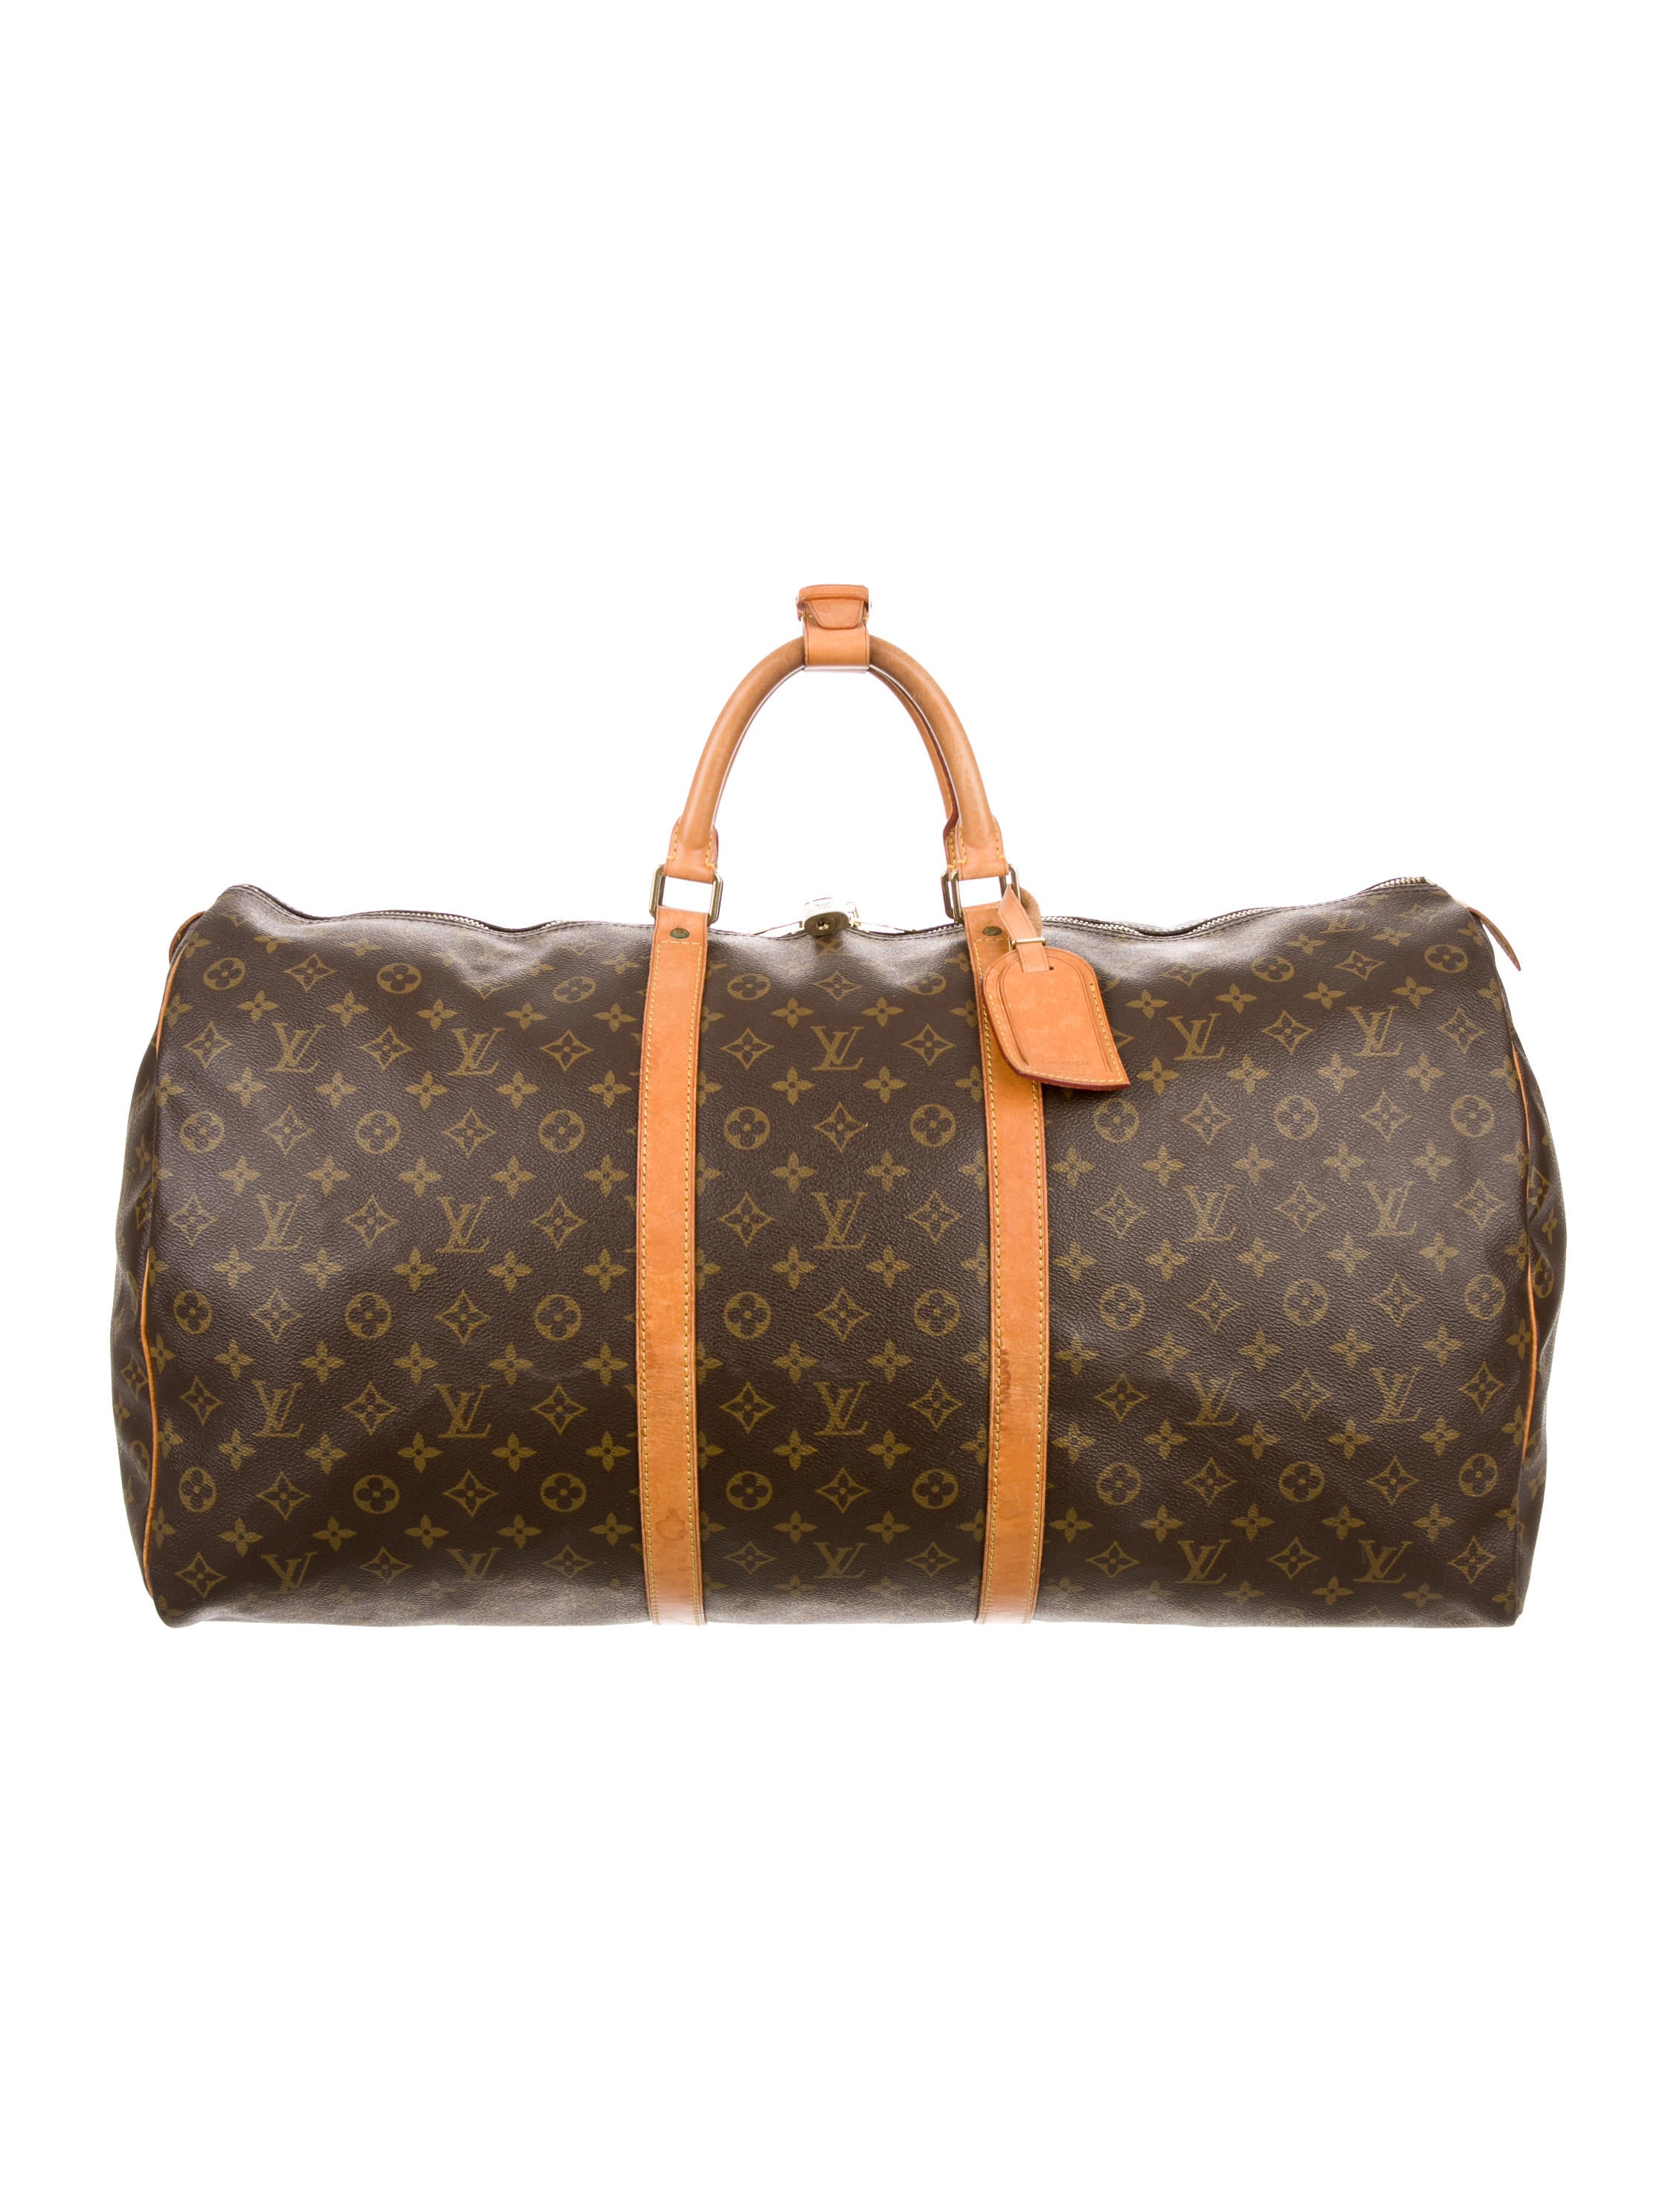 louis vuitton monogram keepall 60 handbags lou111051 the realreal. Black Bedroom Furniture Sets. Home Design Ideas